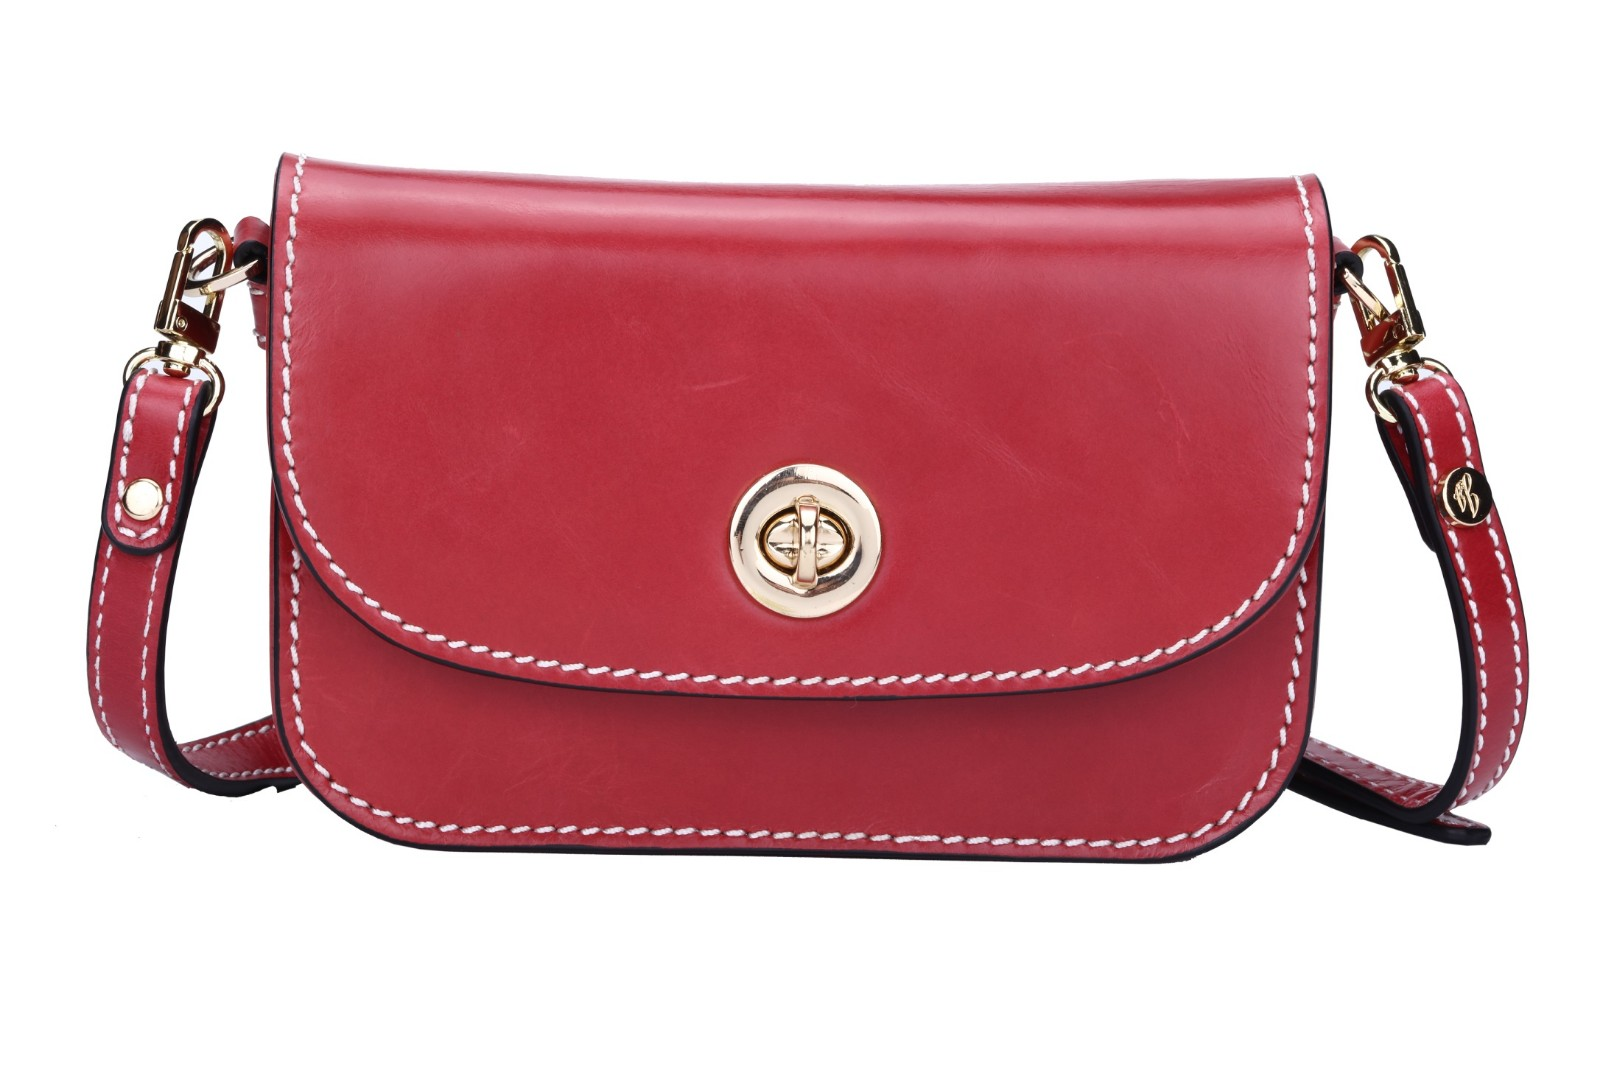 GF bags long cheap clutch bags check now for women-6